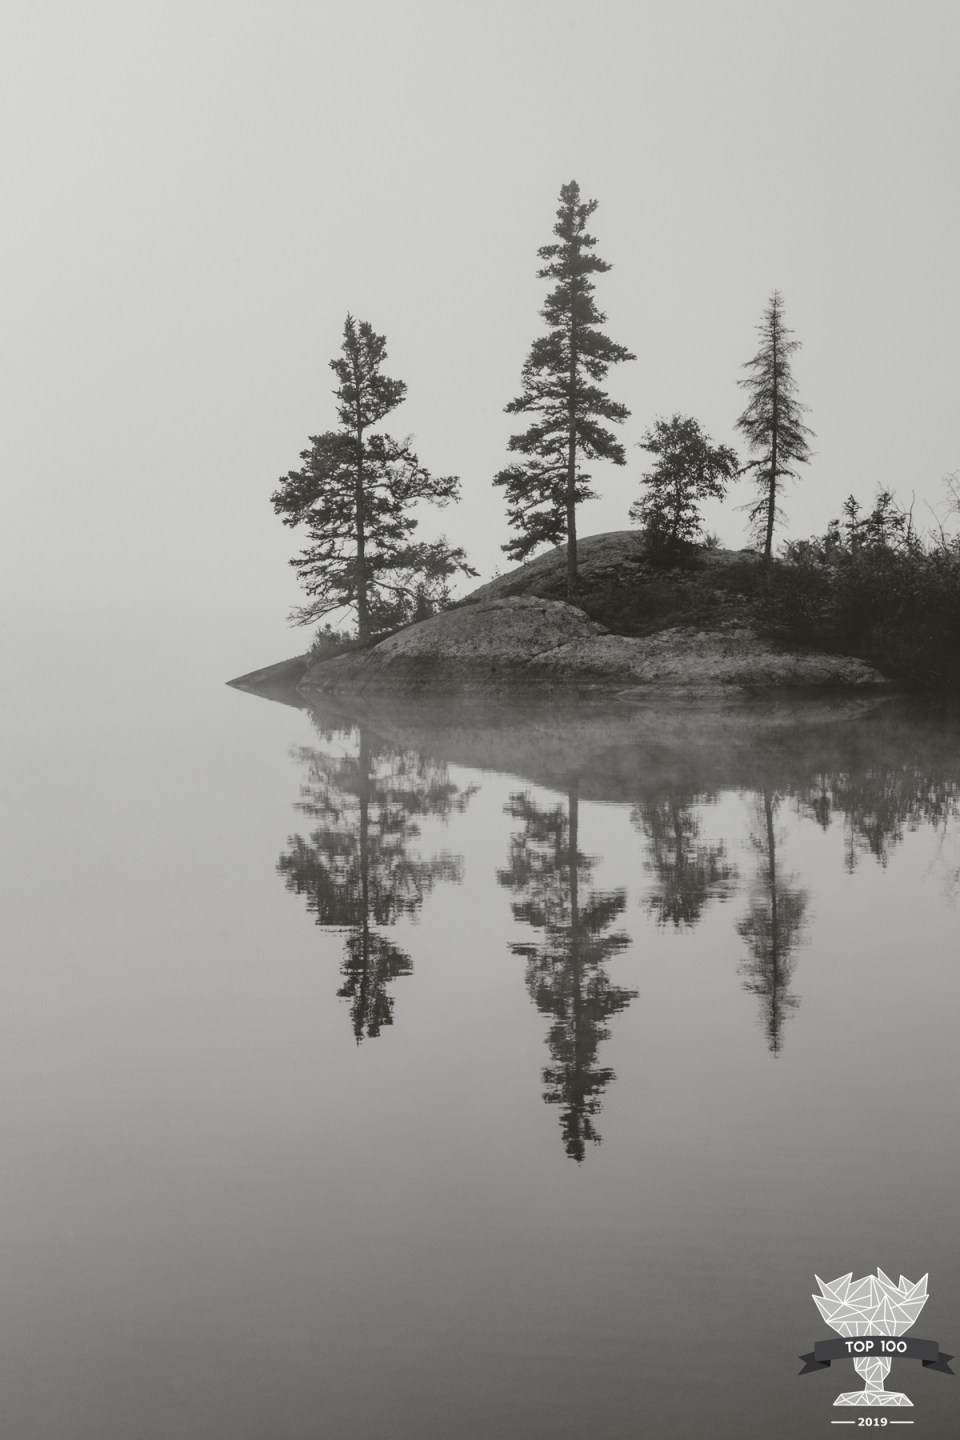 shoot and share contest top 100 photograph of reflection of four trees on the water, horizon obscured by fog, water is still as glass